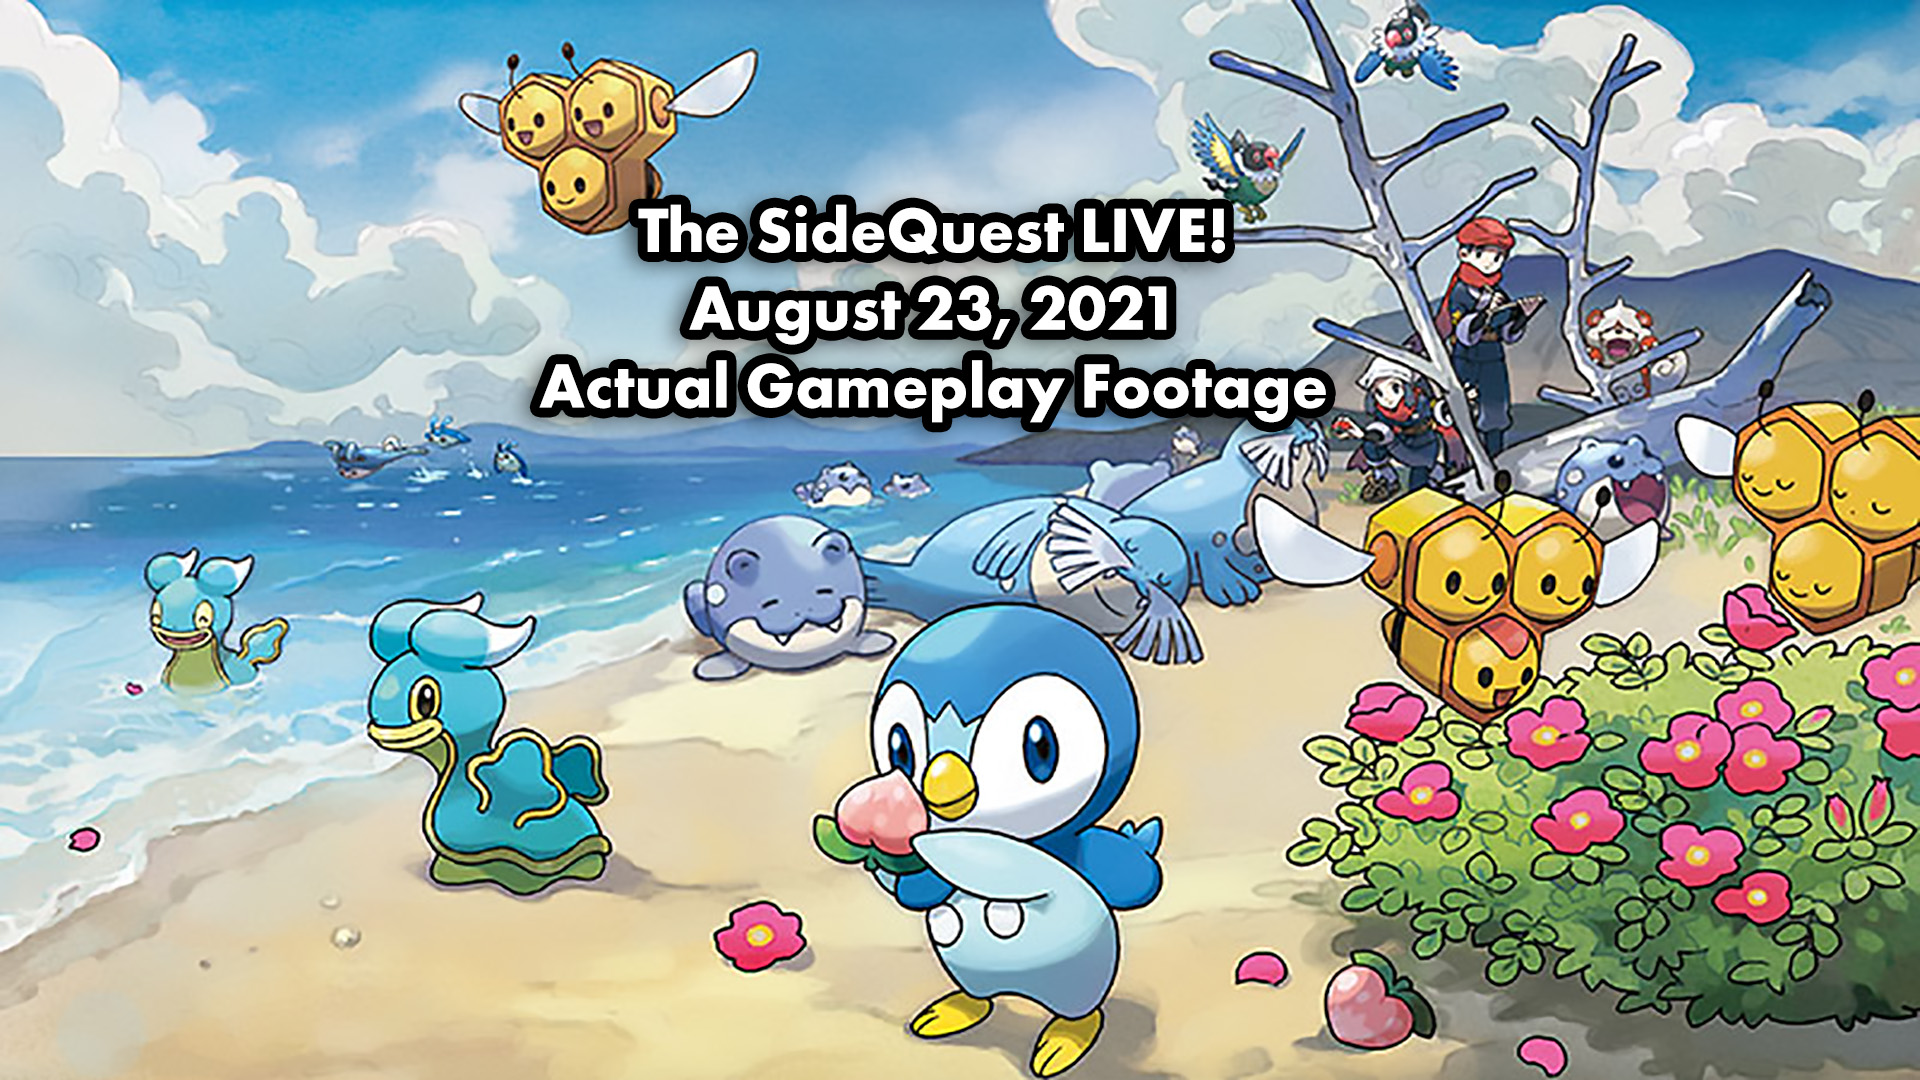 The SideQuest LIVE! August 23, 2021: Actual Gameplay Footage